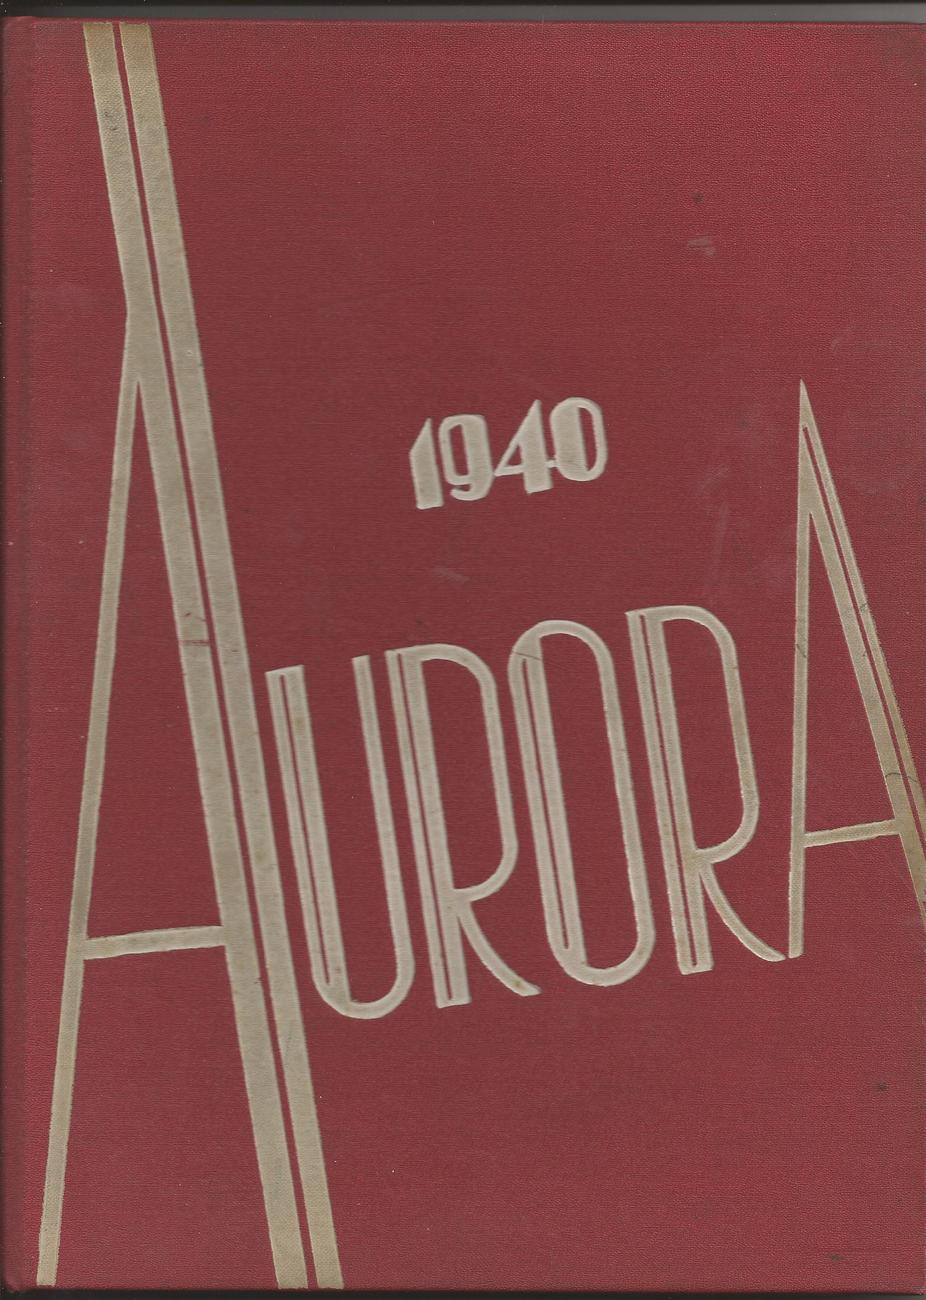 1940_aurora